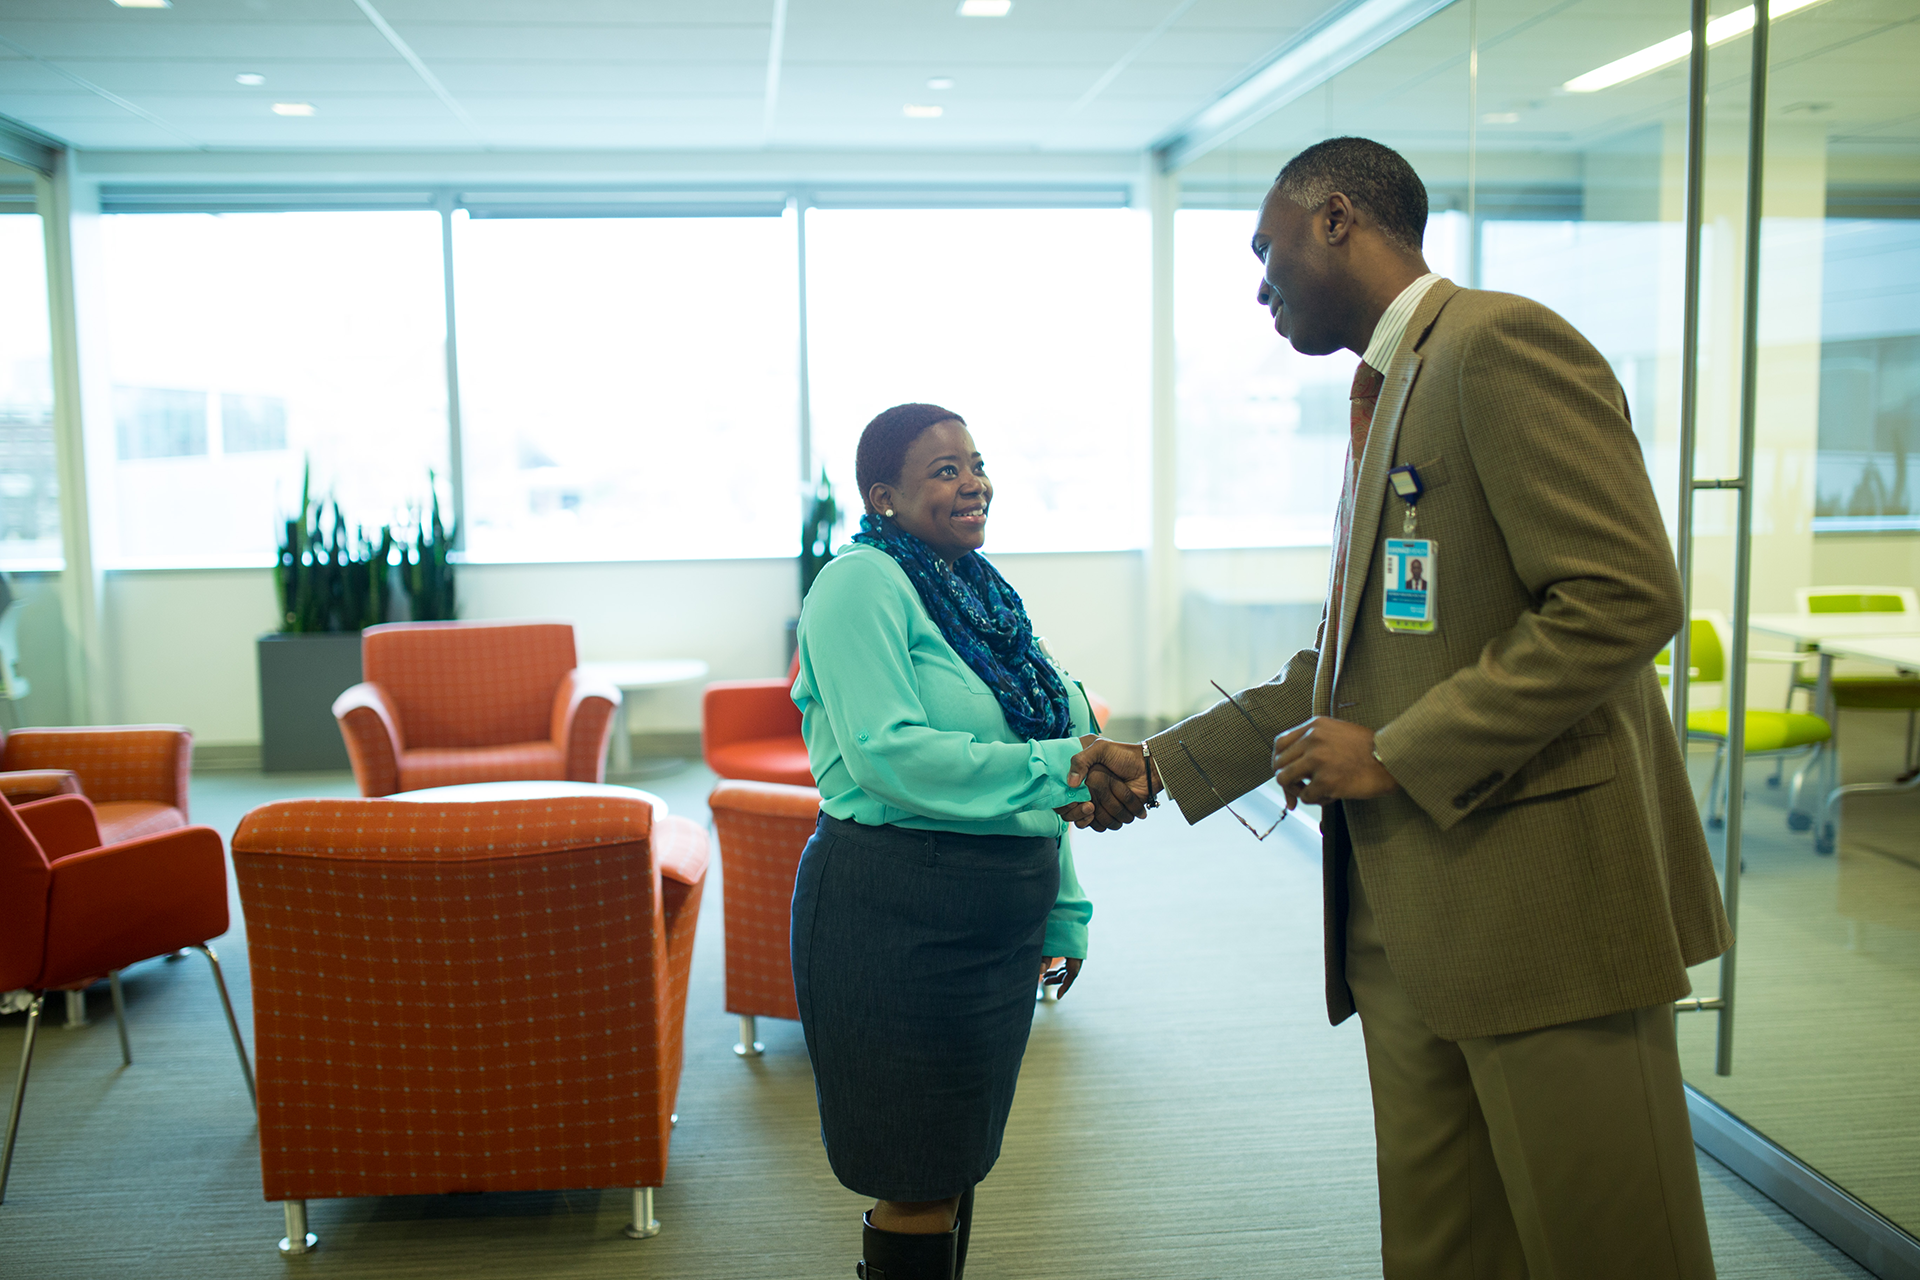 Denise joined Goodwill's NFP Community Advisory Board and now works alongside Goodwill and Eskenazi leaders